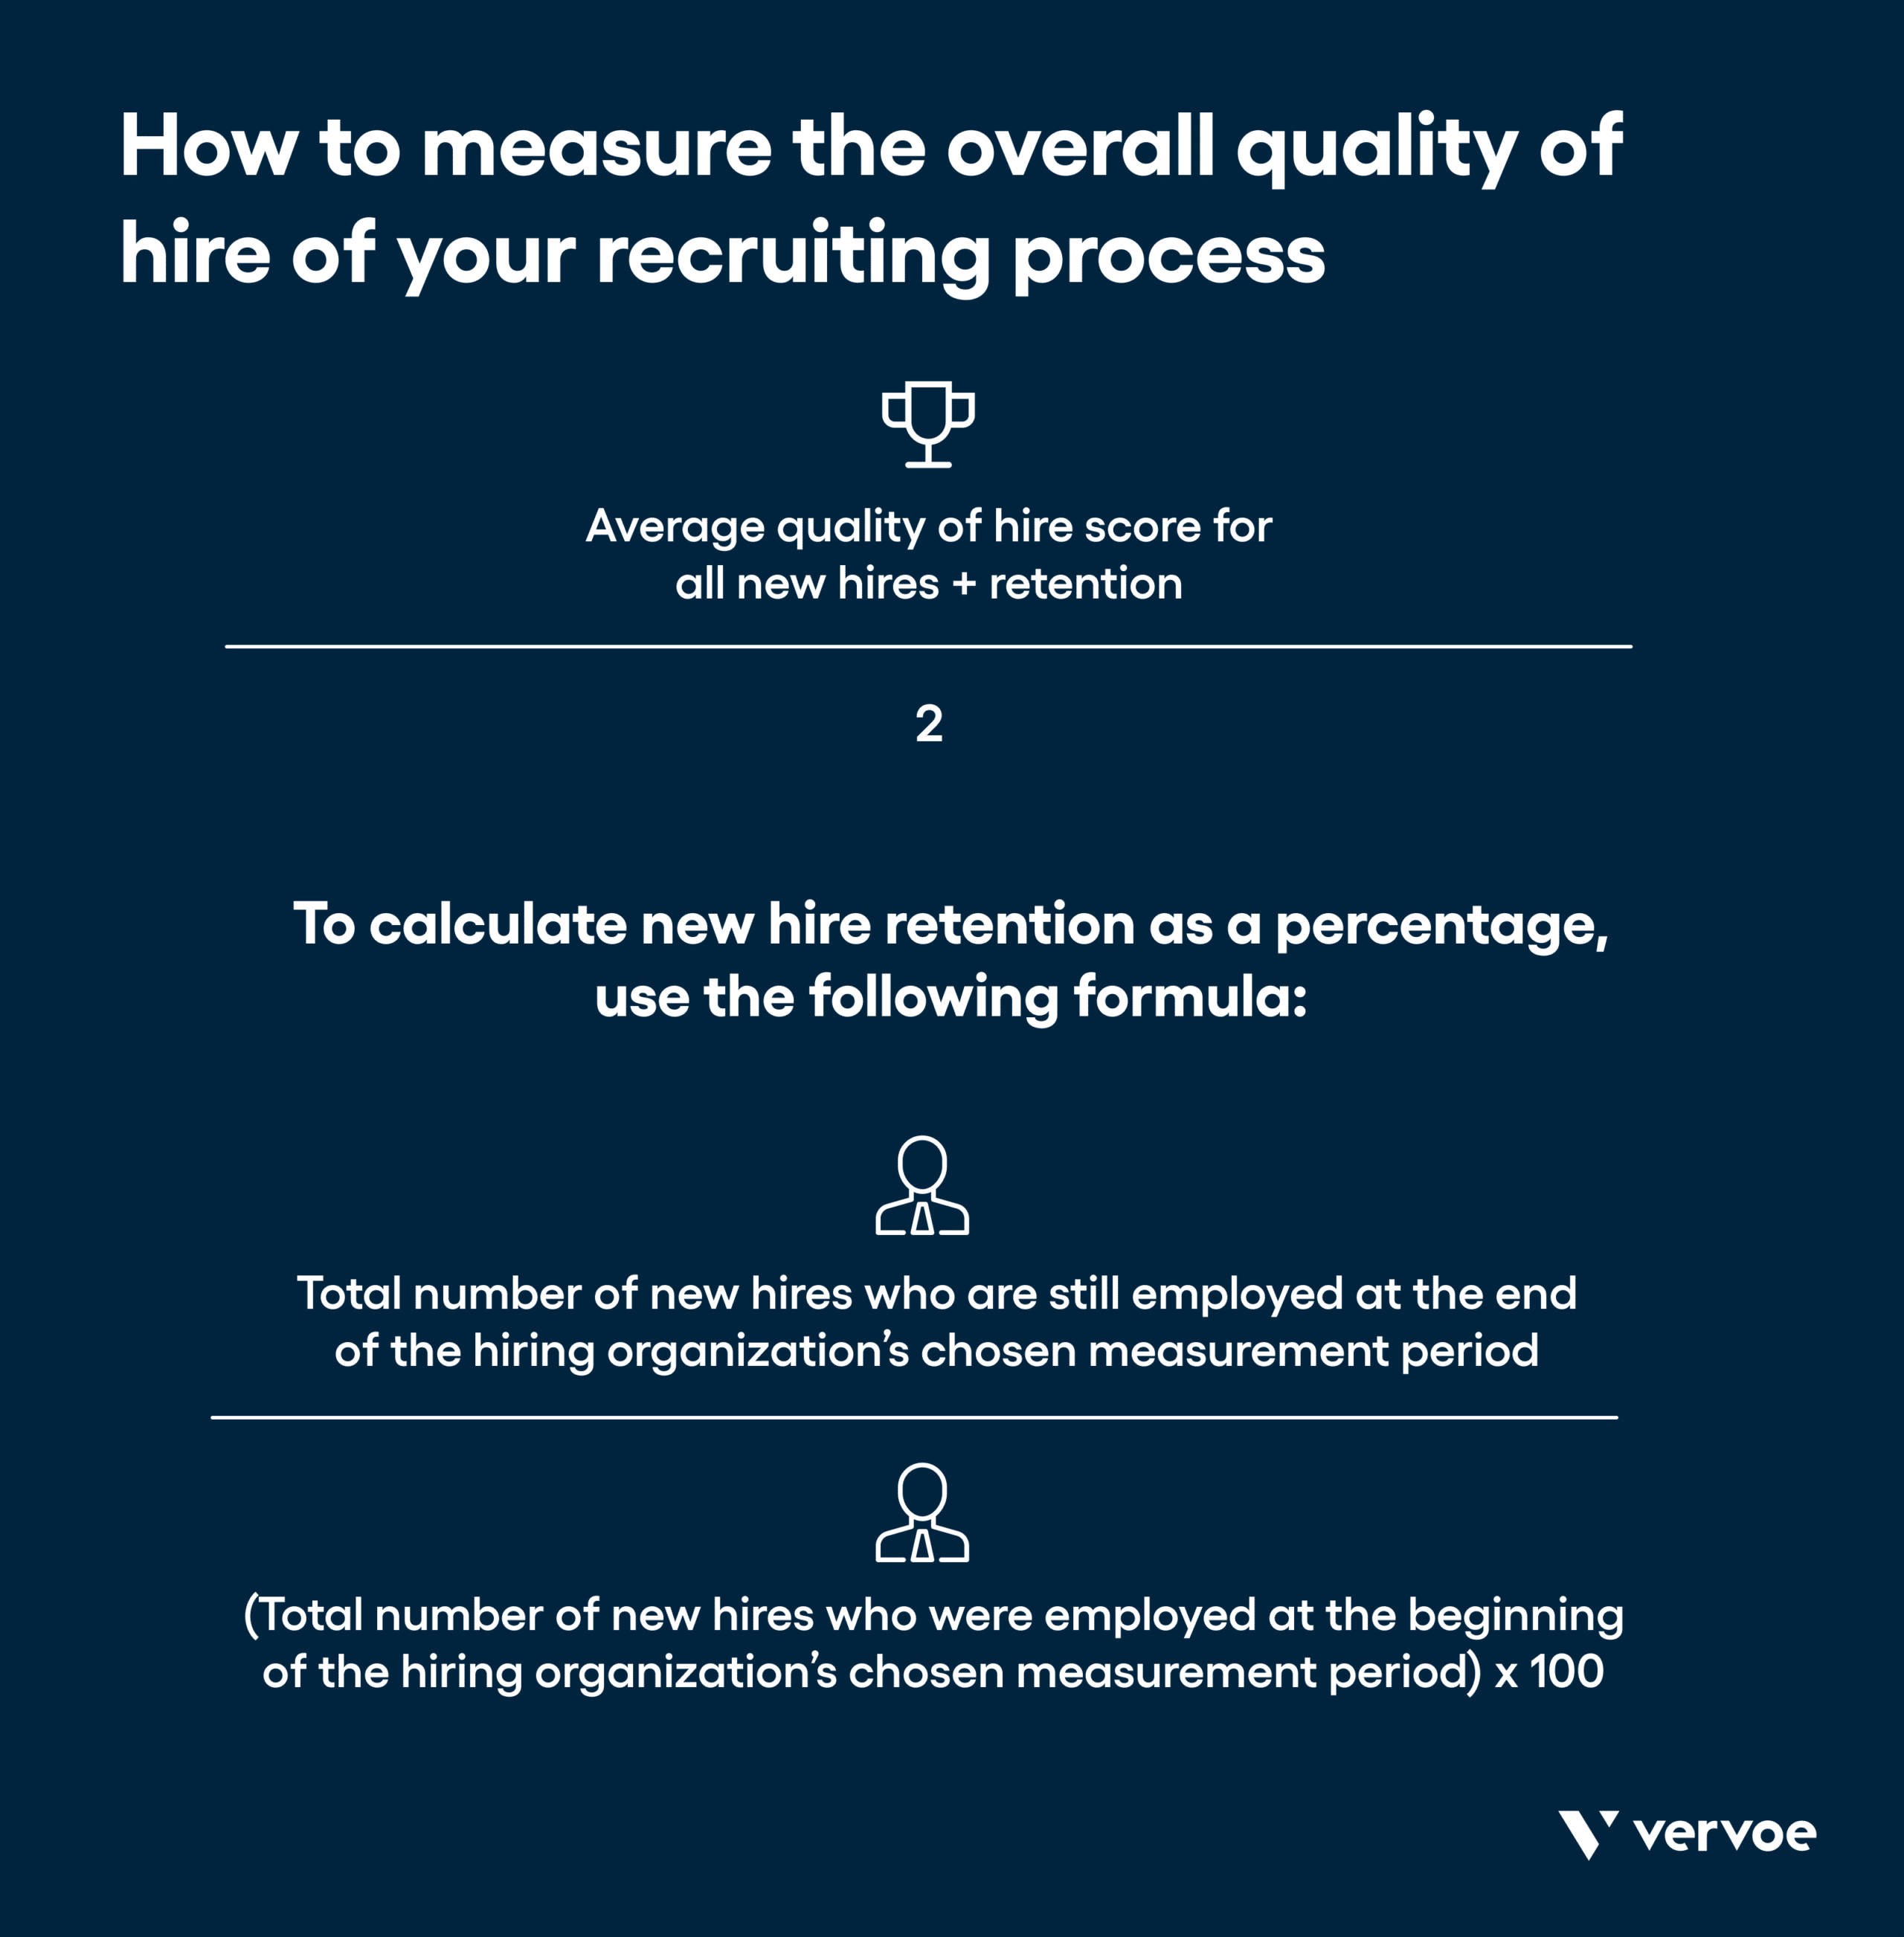 Infographic showing how to measure overall quality of hire